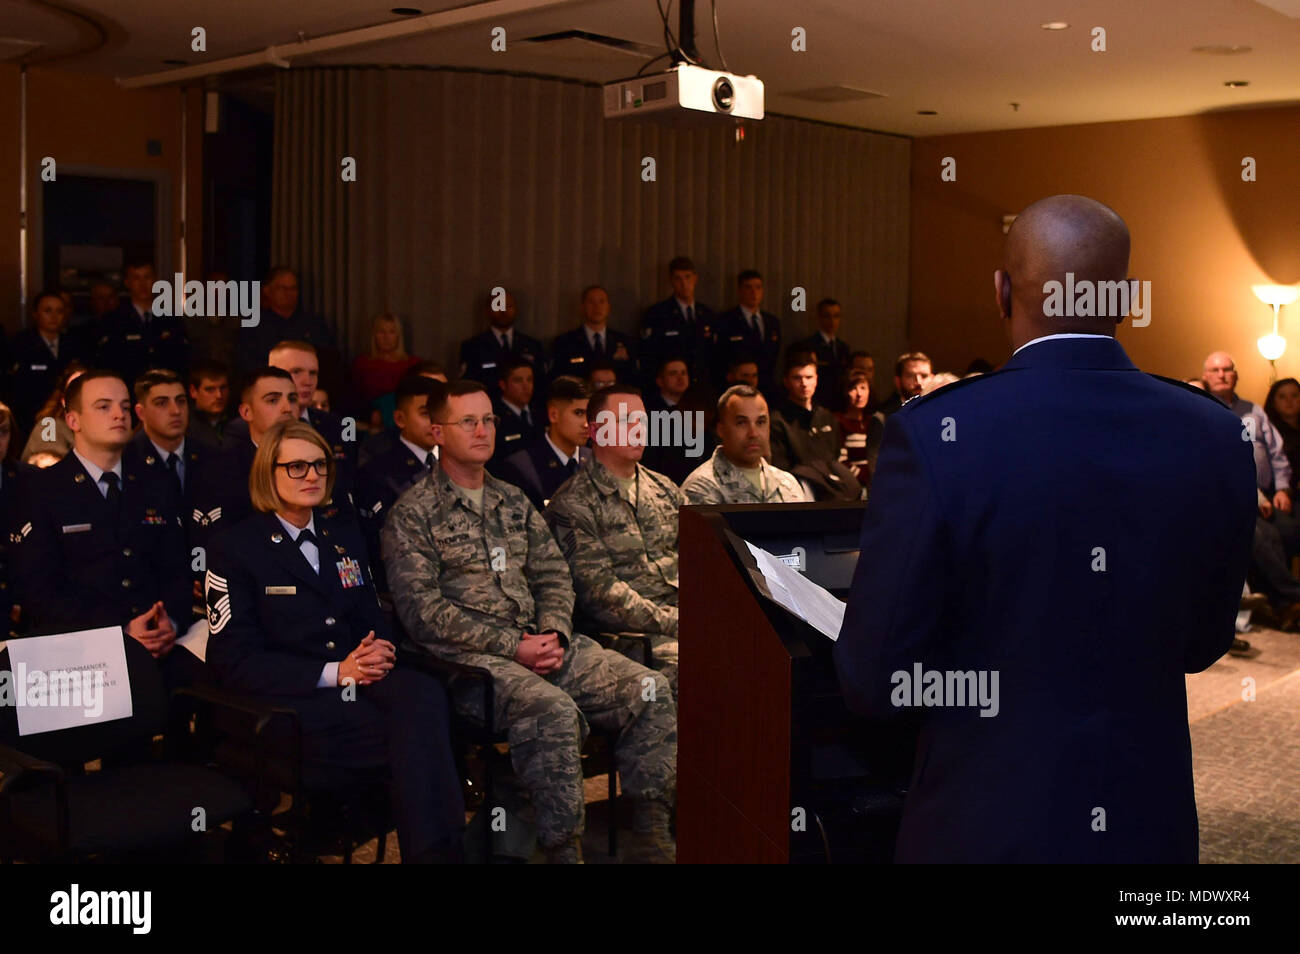 Lt. Col. Erik Welcome, 460th Space Communications Squadron commander, speaks to an audience on the dangers of drinking and driving Dec. 7, 2017, on Buckley Air Force Base, Colorado. Each year, the 460th SCS gathers to honor Senior Airman Michael S. Snyder and Staff Sgt. Kristopher G. Mansfield who both had their lives taken in drunk driving accidents. (U.S. Air Force photo by Senior Airman Luke W. Nowakowski) - Stock Image